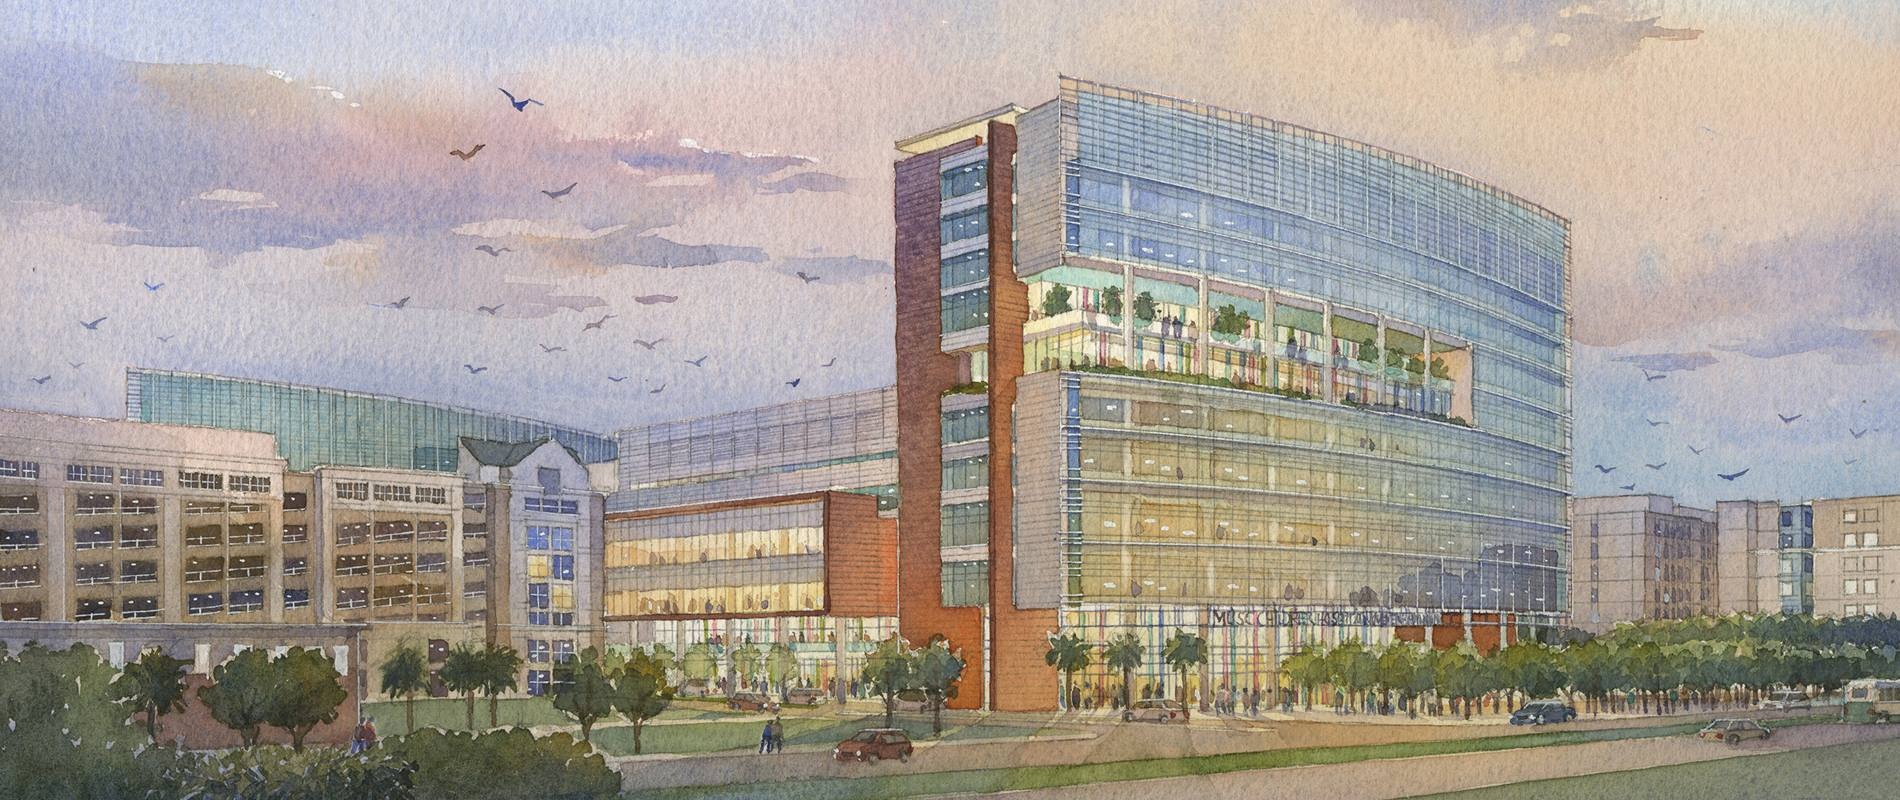 watercolor rendering of the Shawn Jenkins Childrens Hospital and Womens Pavilion project